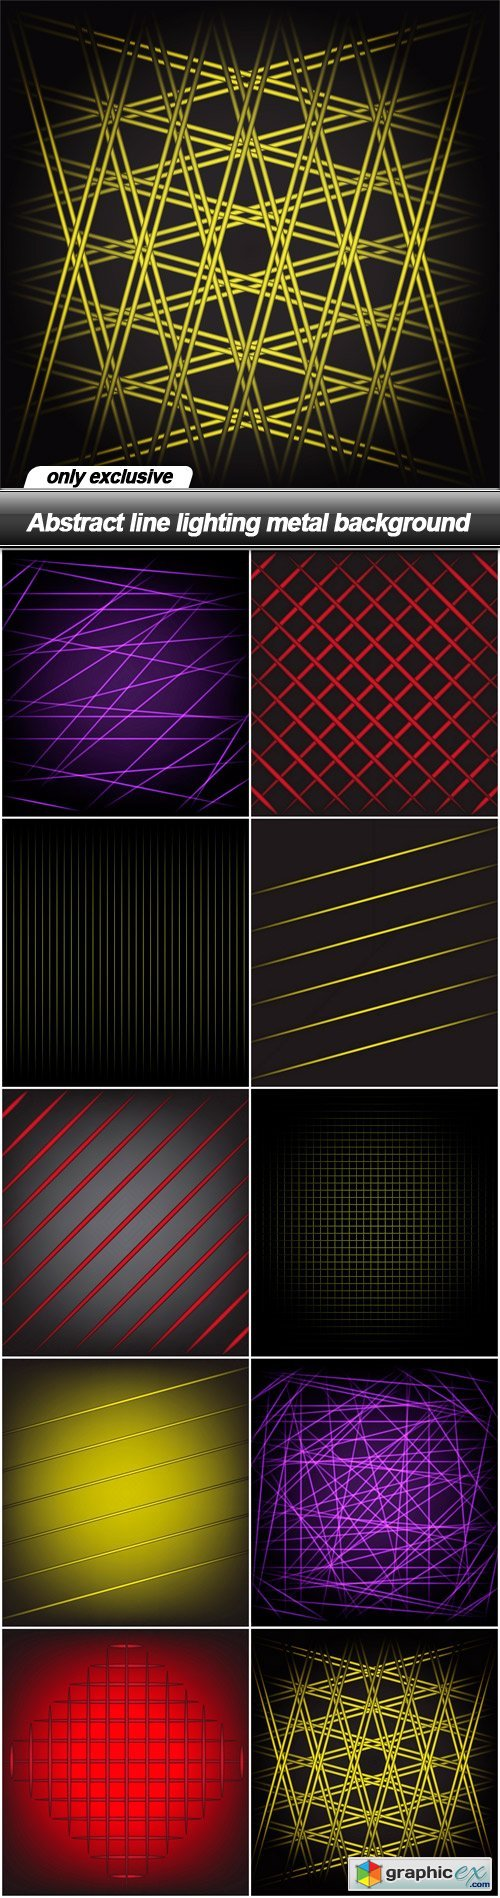 Abstract line lighting metal background - 10 EPS